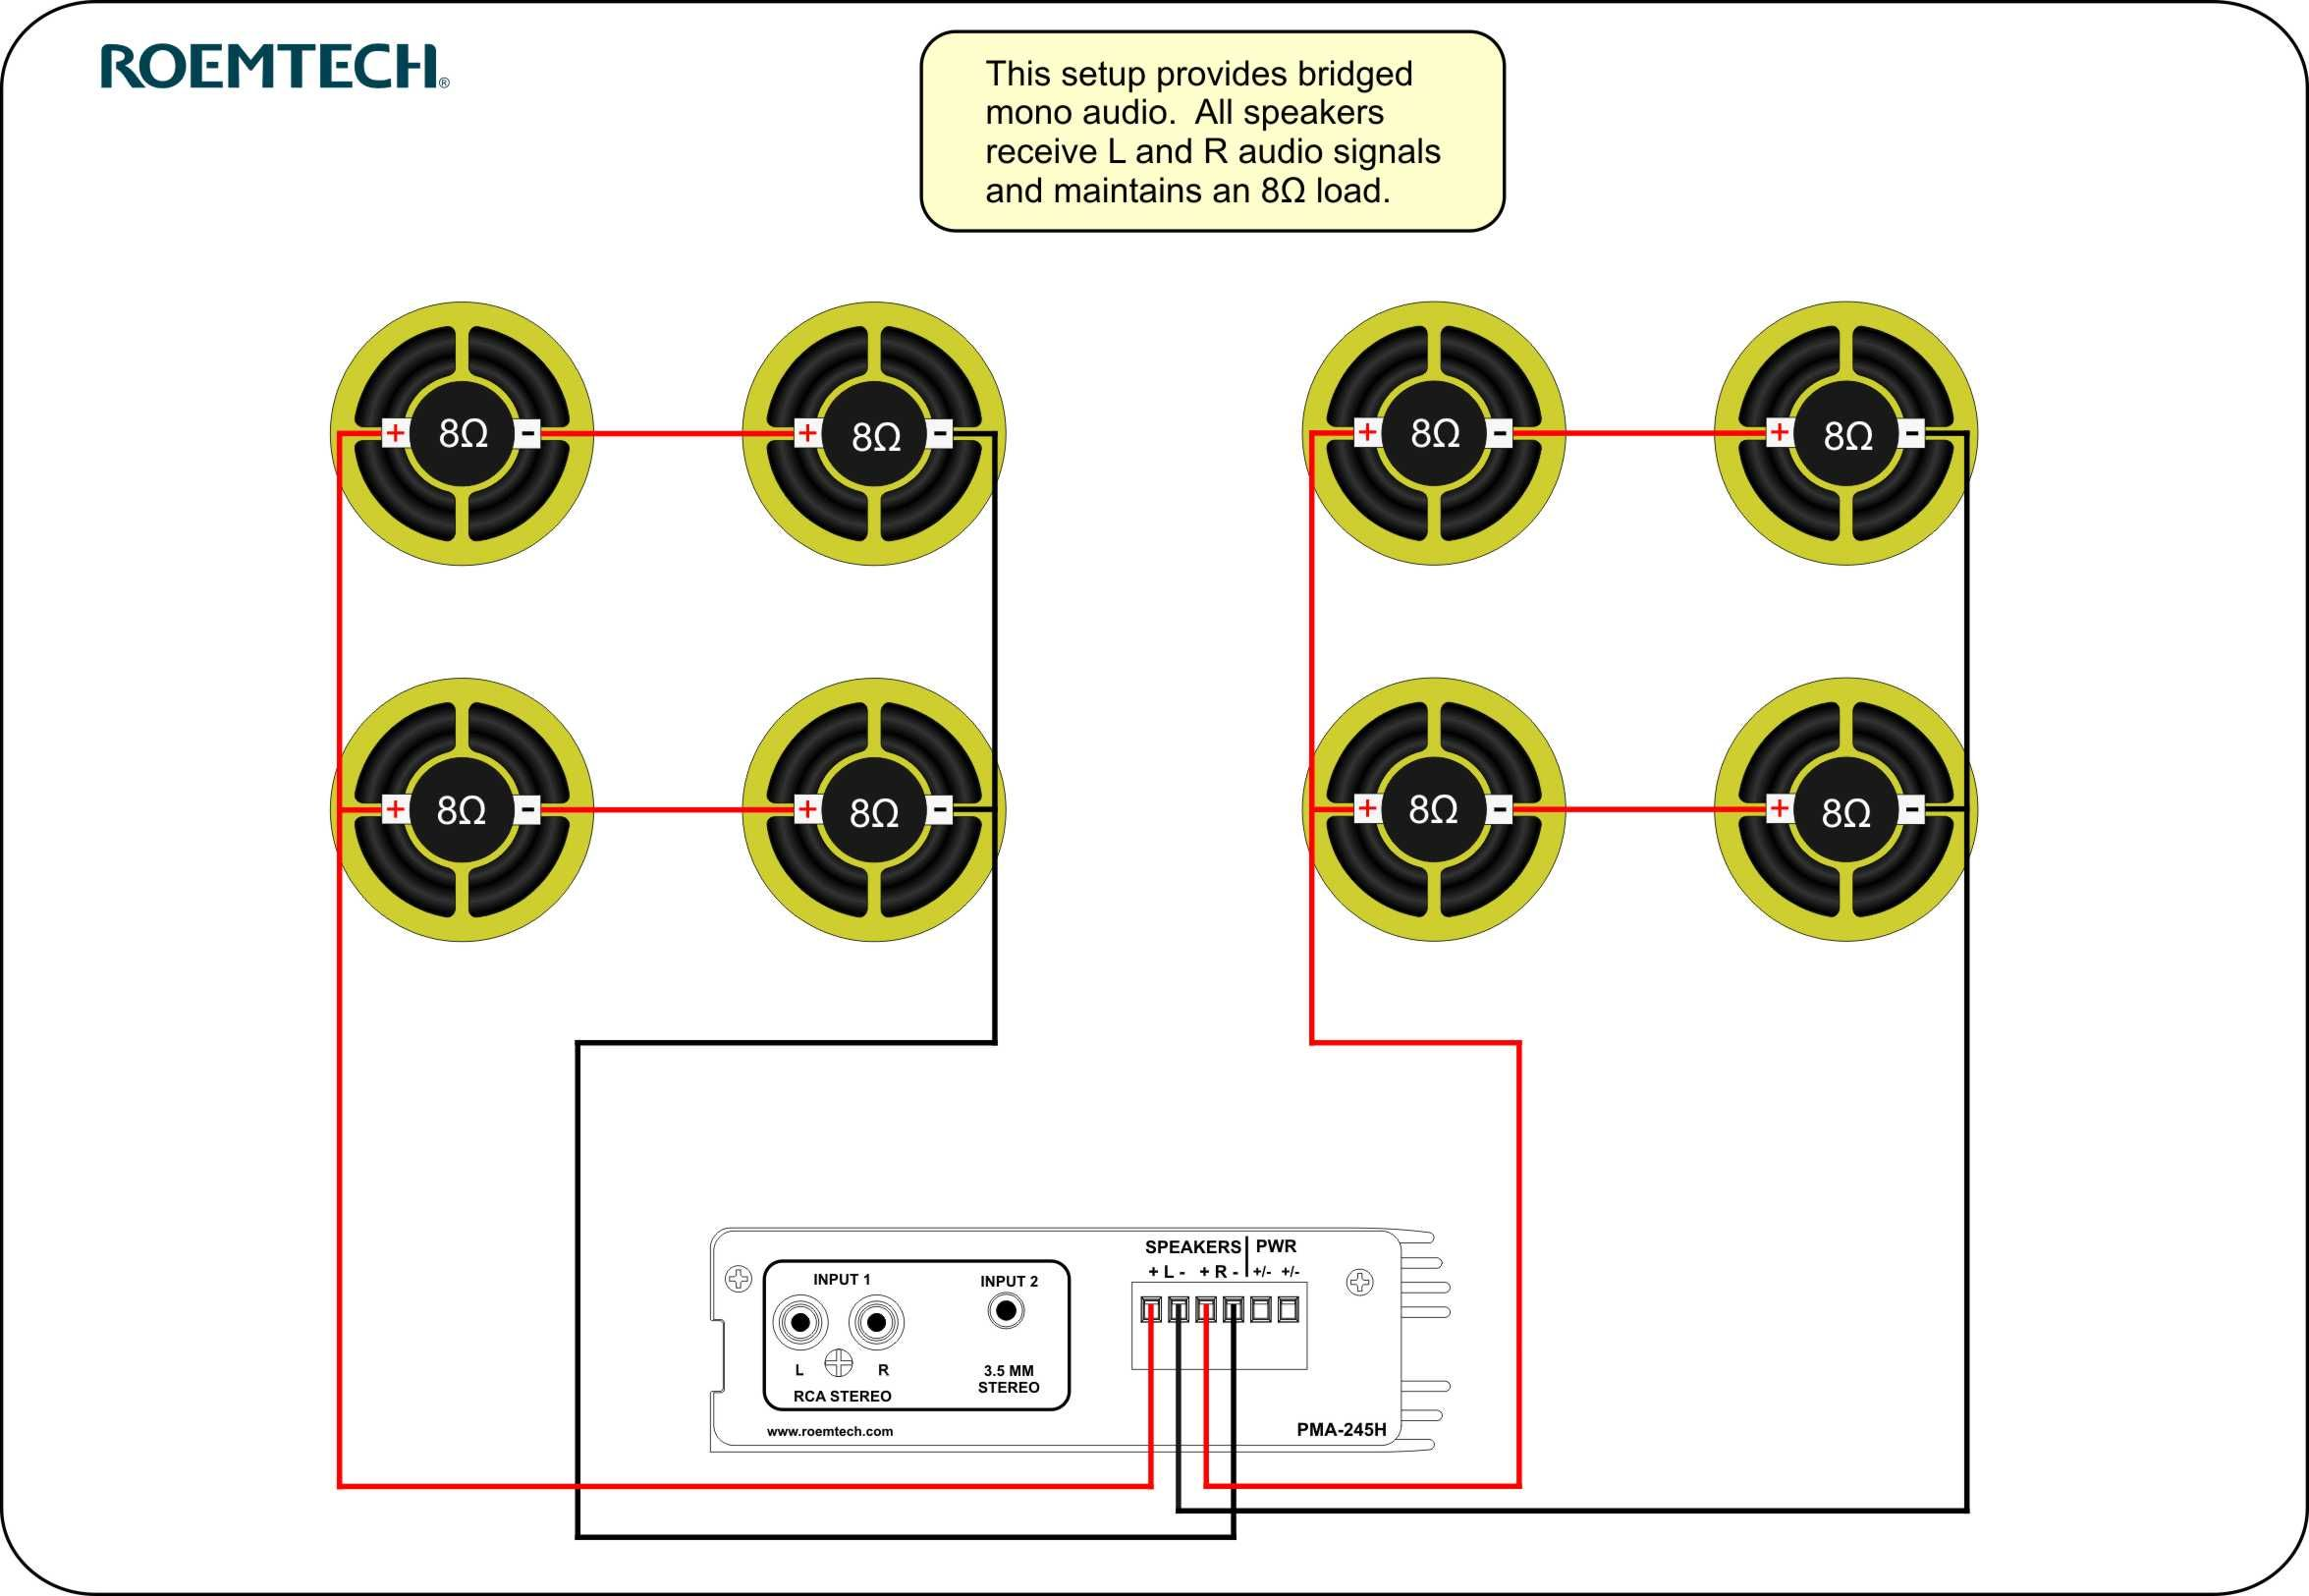 Classroom Audio Systems - Multiple Speaker Wiring Diagram | Speaker wire,  Car audio installation, Car audioPinterest